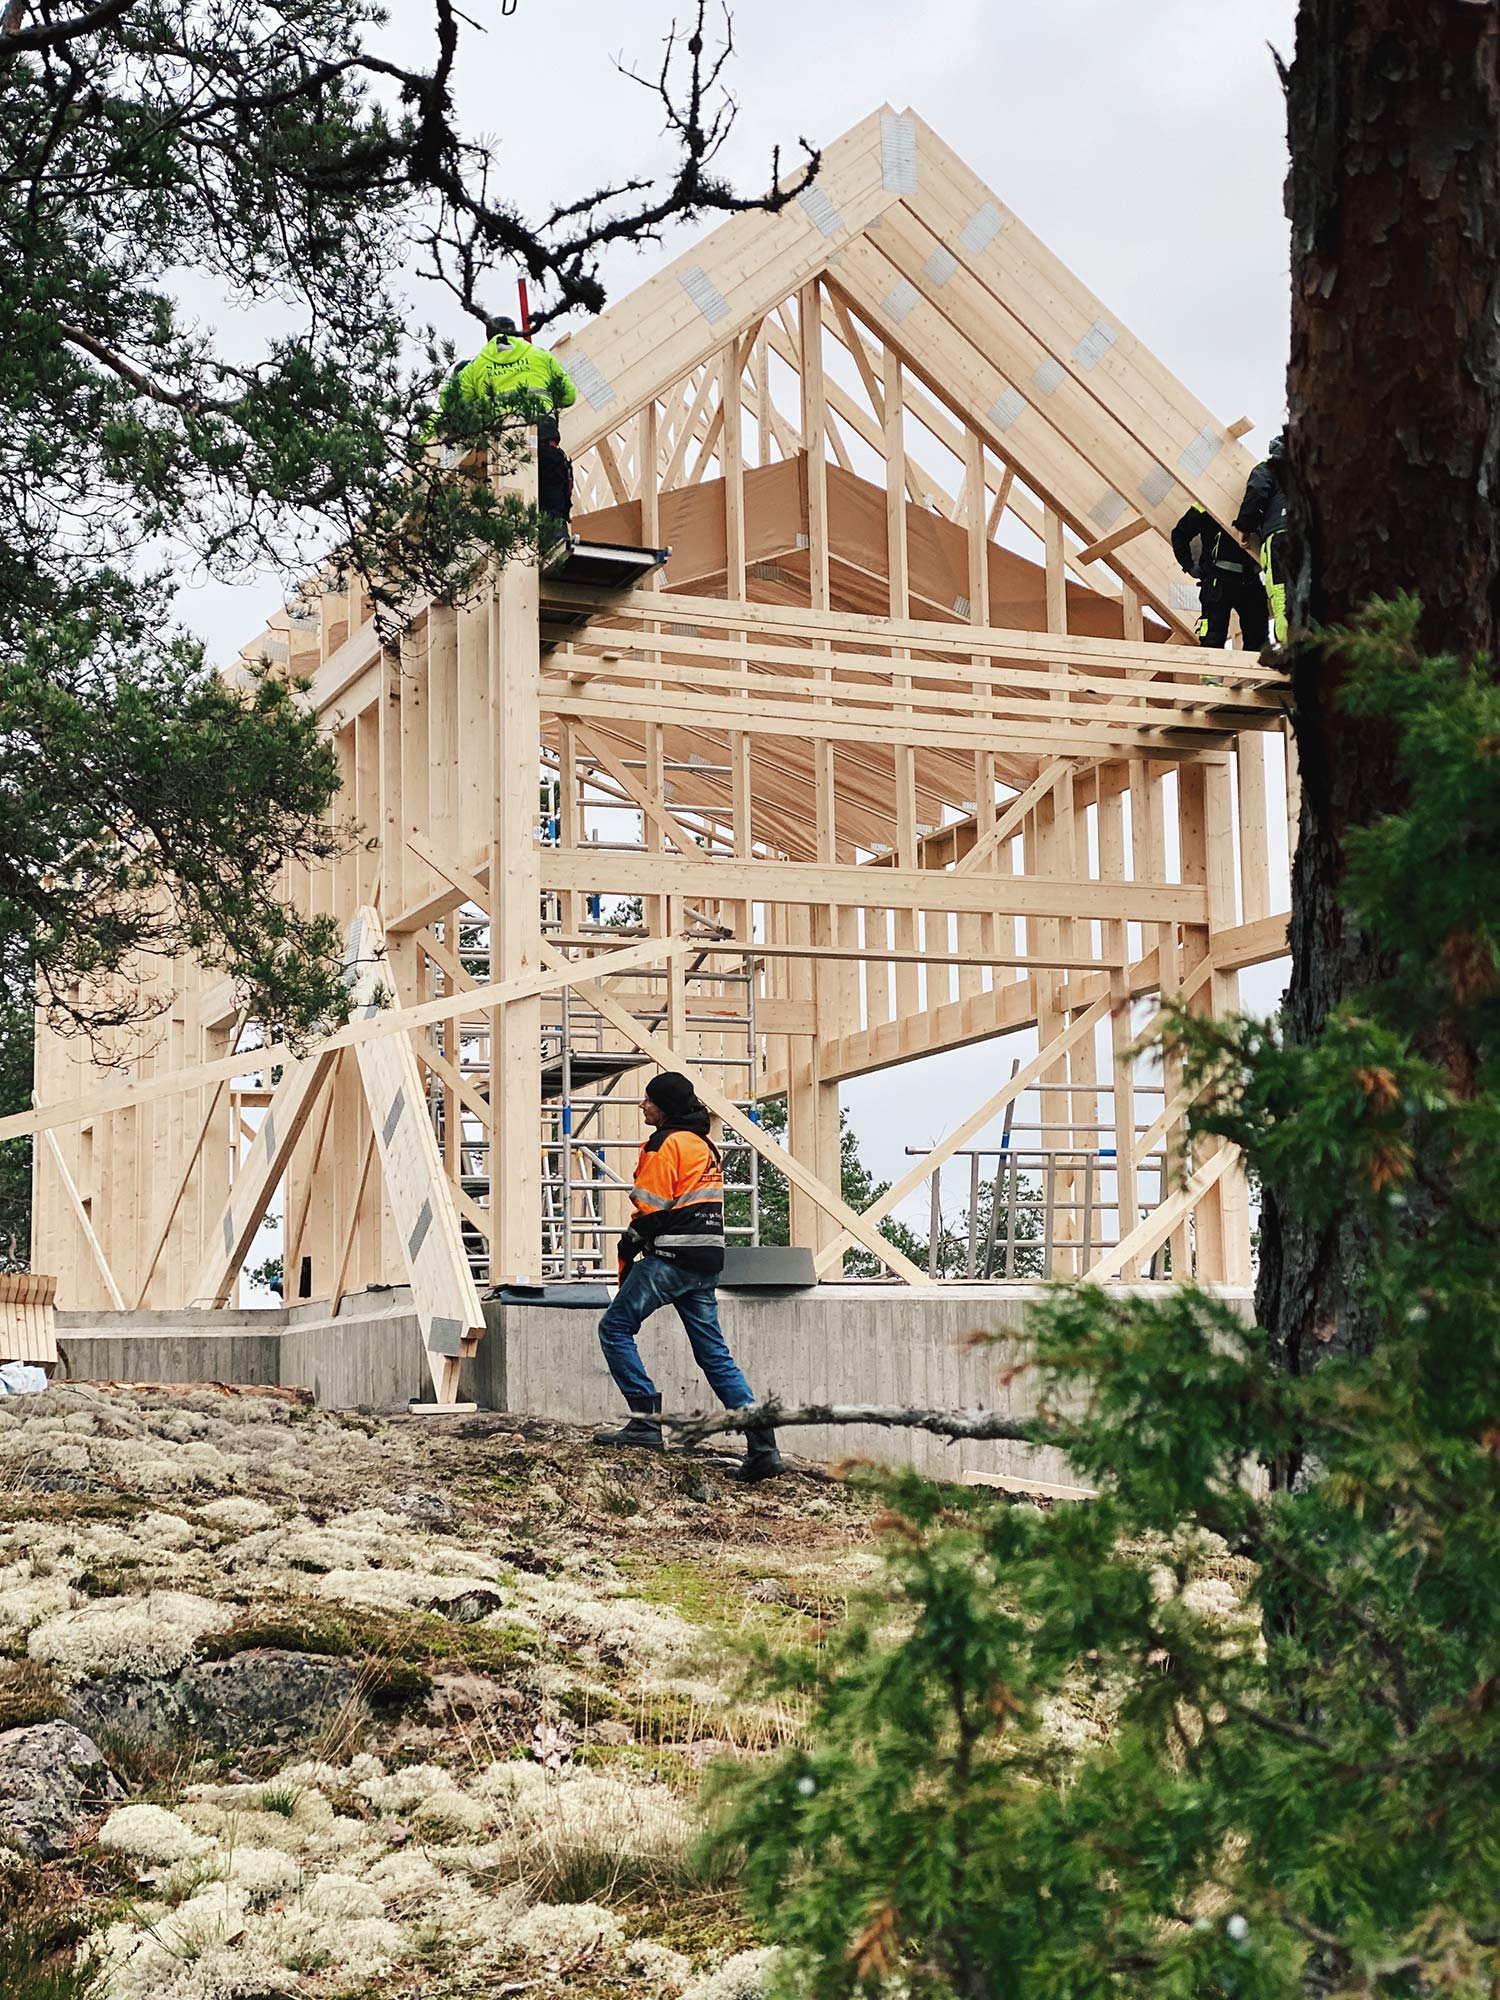 Building-up-the-frame-and-roof-of-the-house-(9)